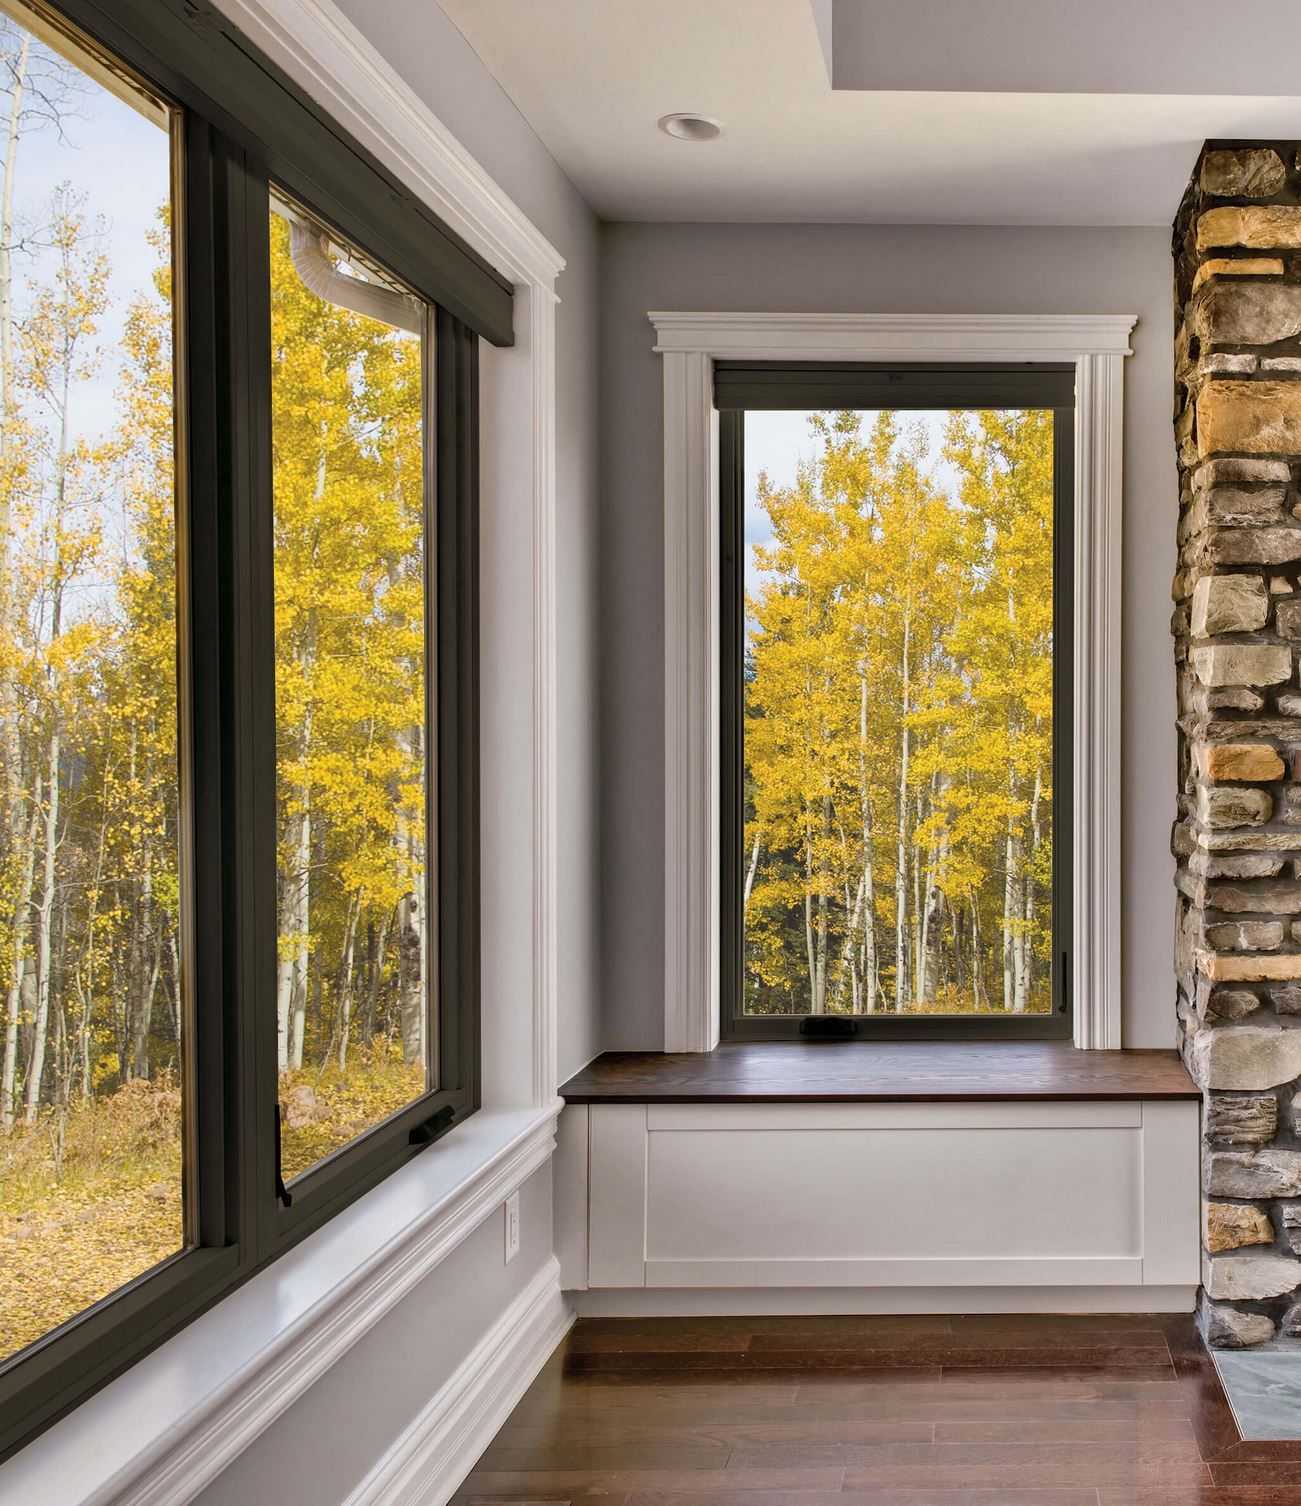 Large Fiberglass Window Replacement Showcasing Natural Beauty For Home Living Room